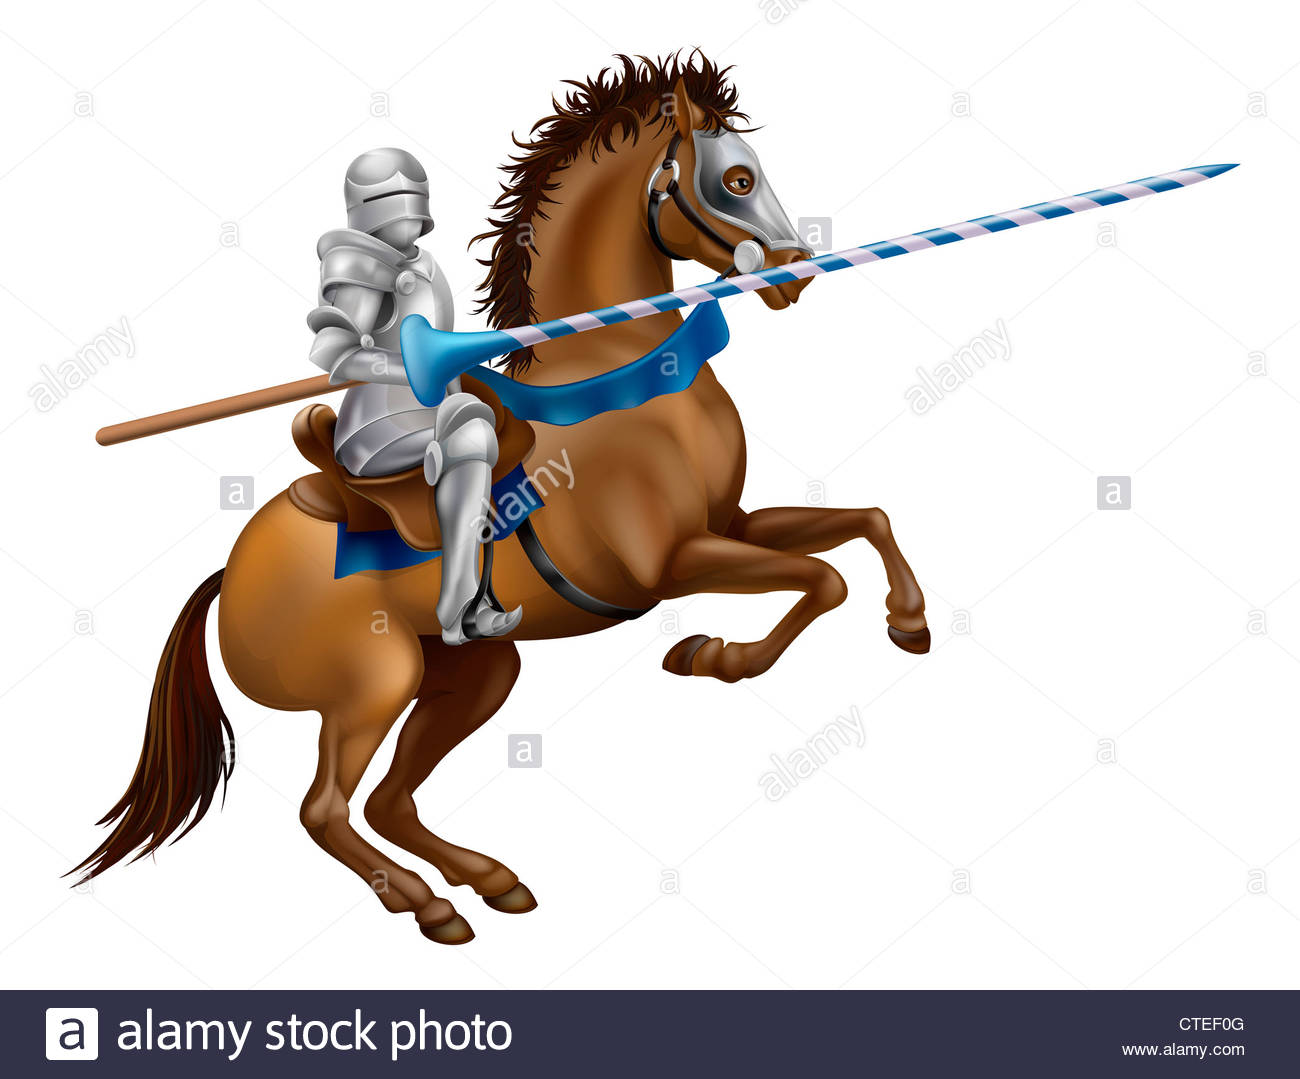 1300x1079 Drawing Of A Jousting Knight In Armour On Horse Back Stock Photo